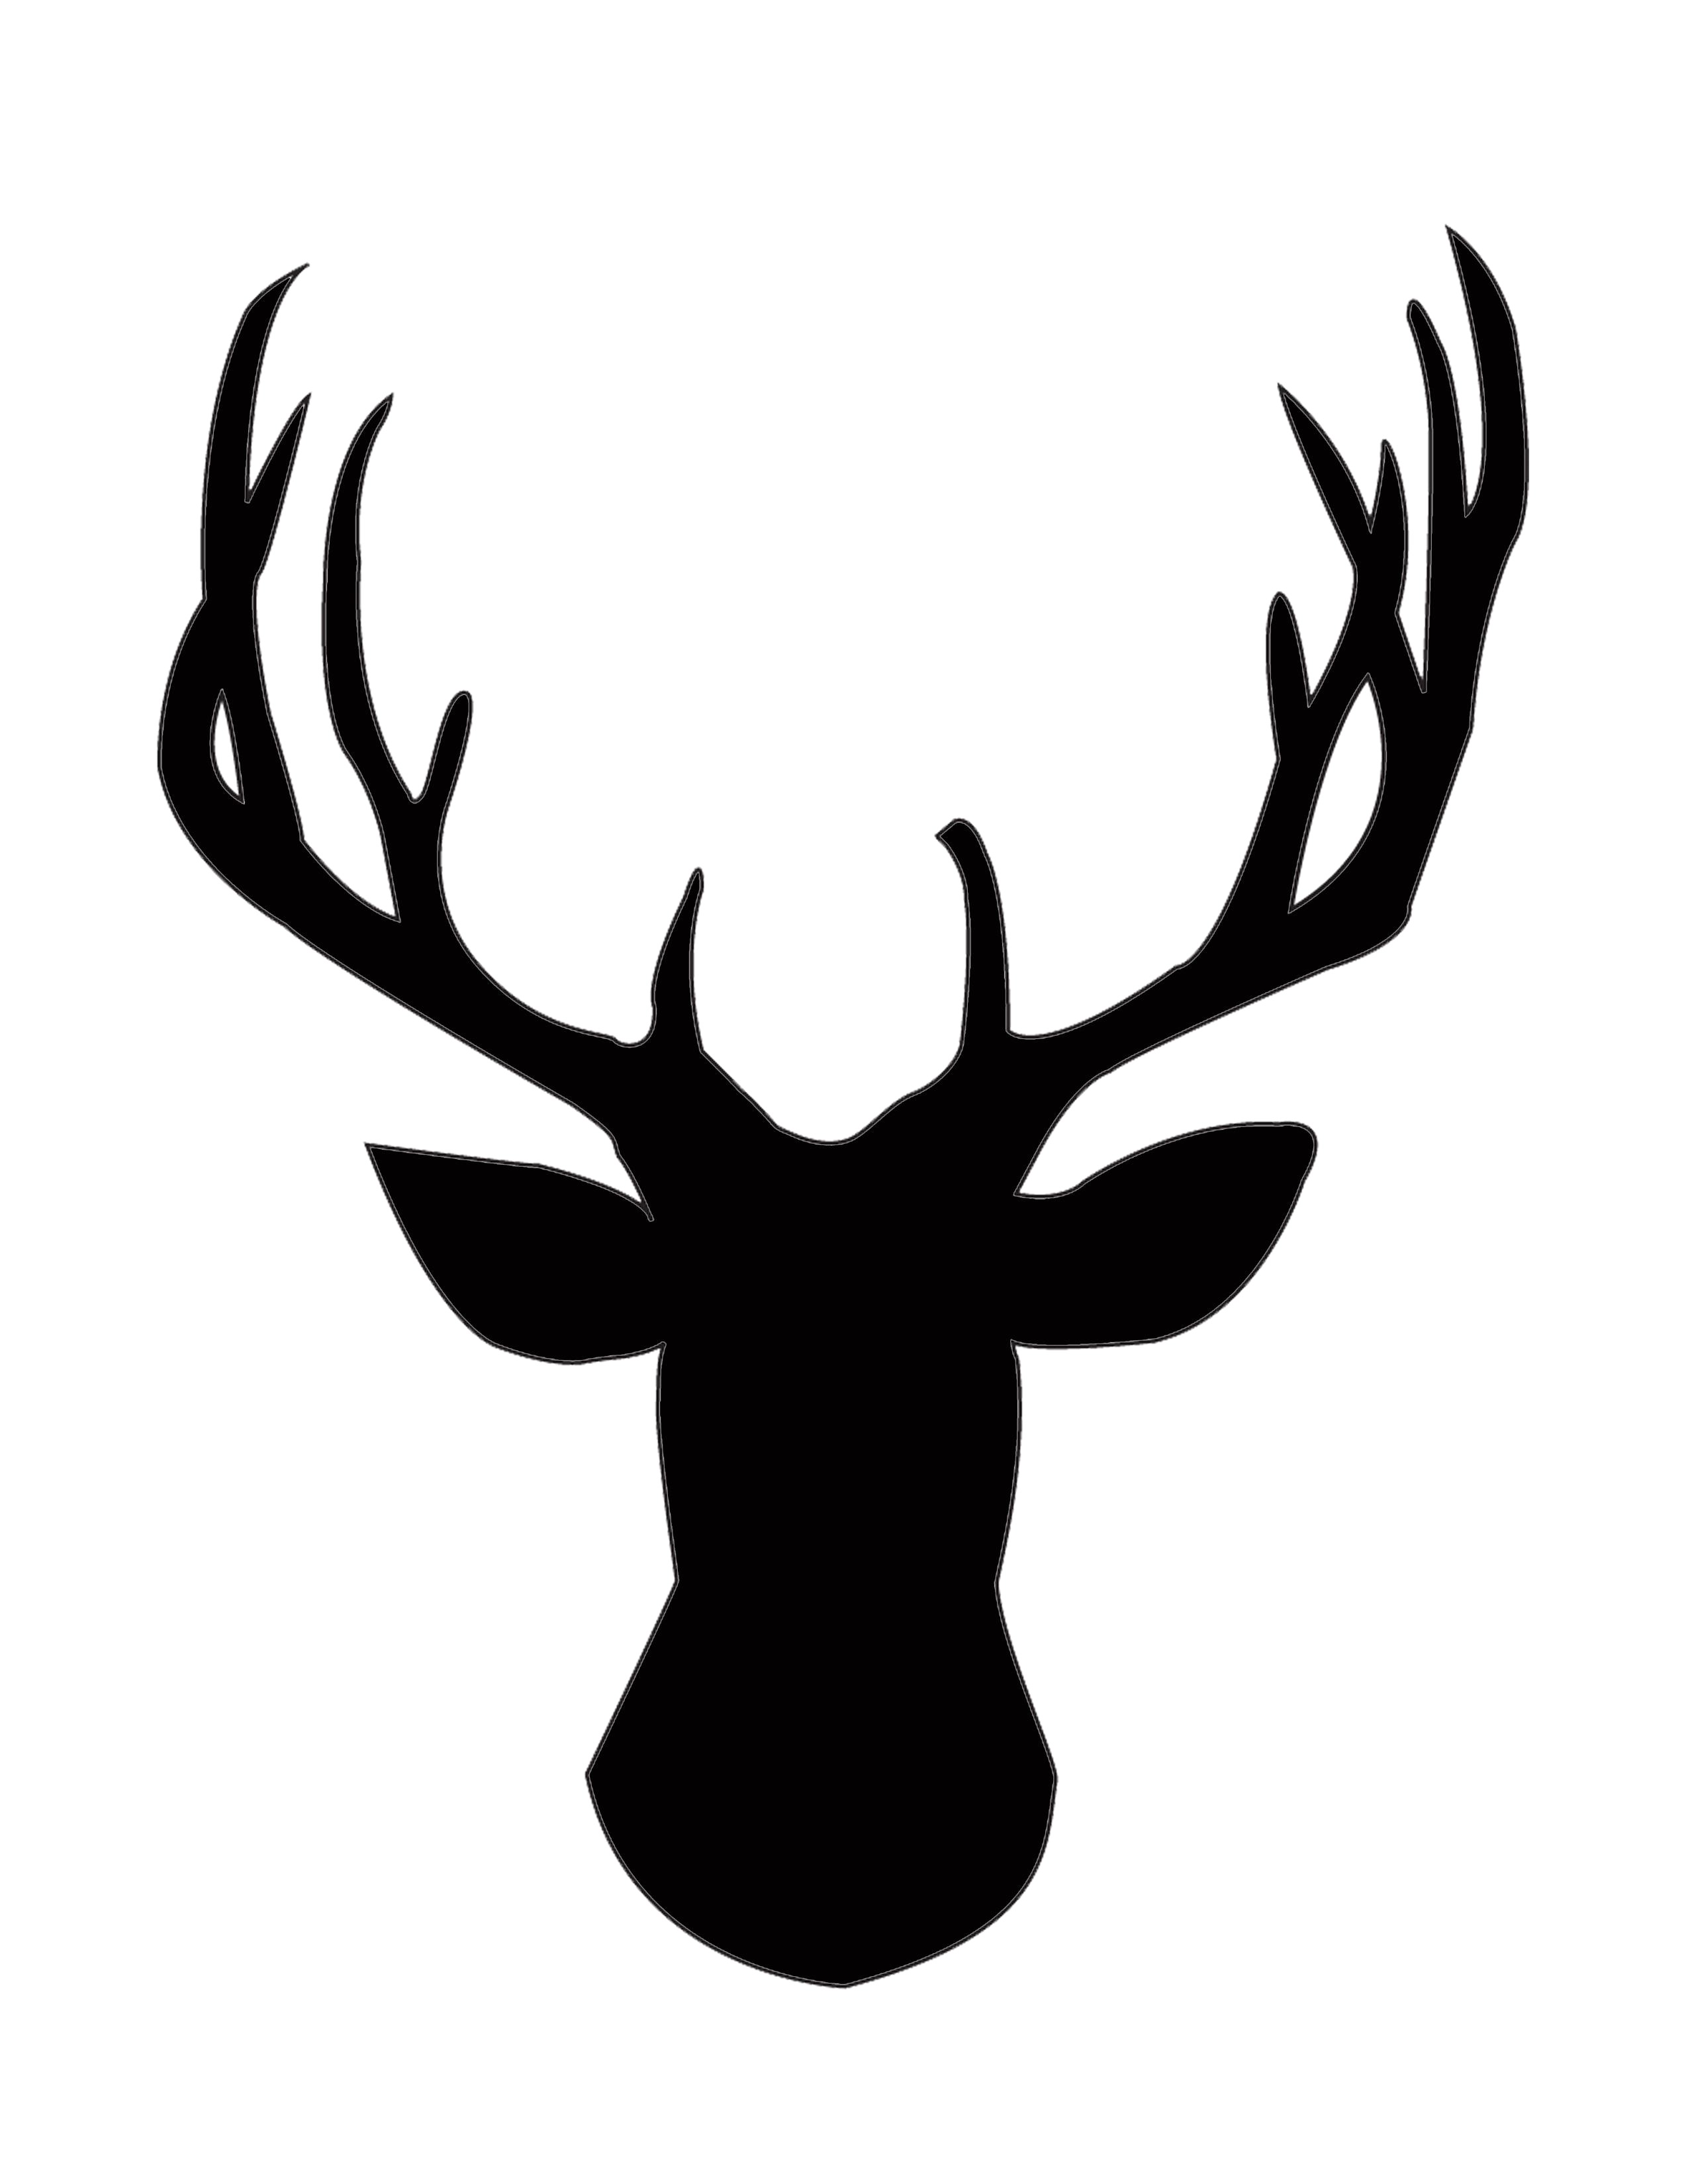 2550x3300 56558253 Hand Drawn Image Of Big White Tail Buck Head With Large